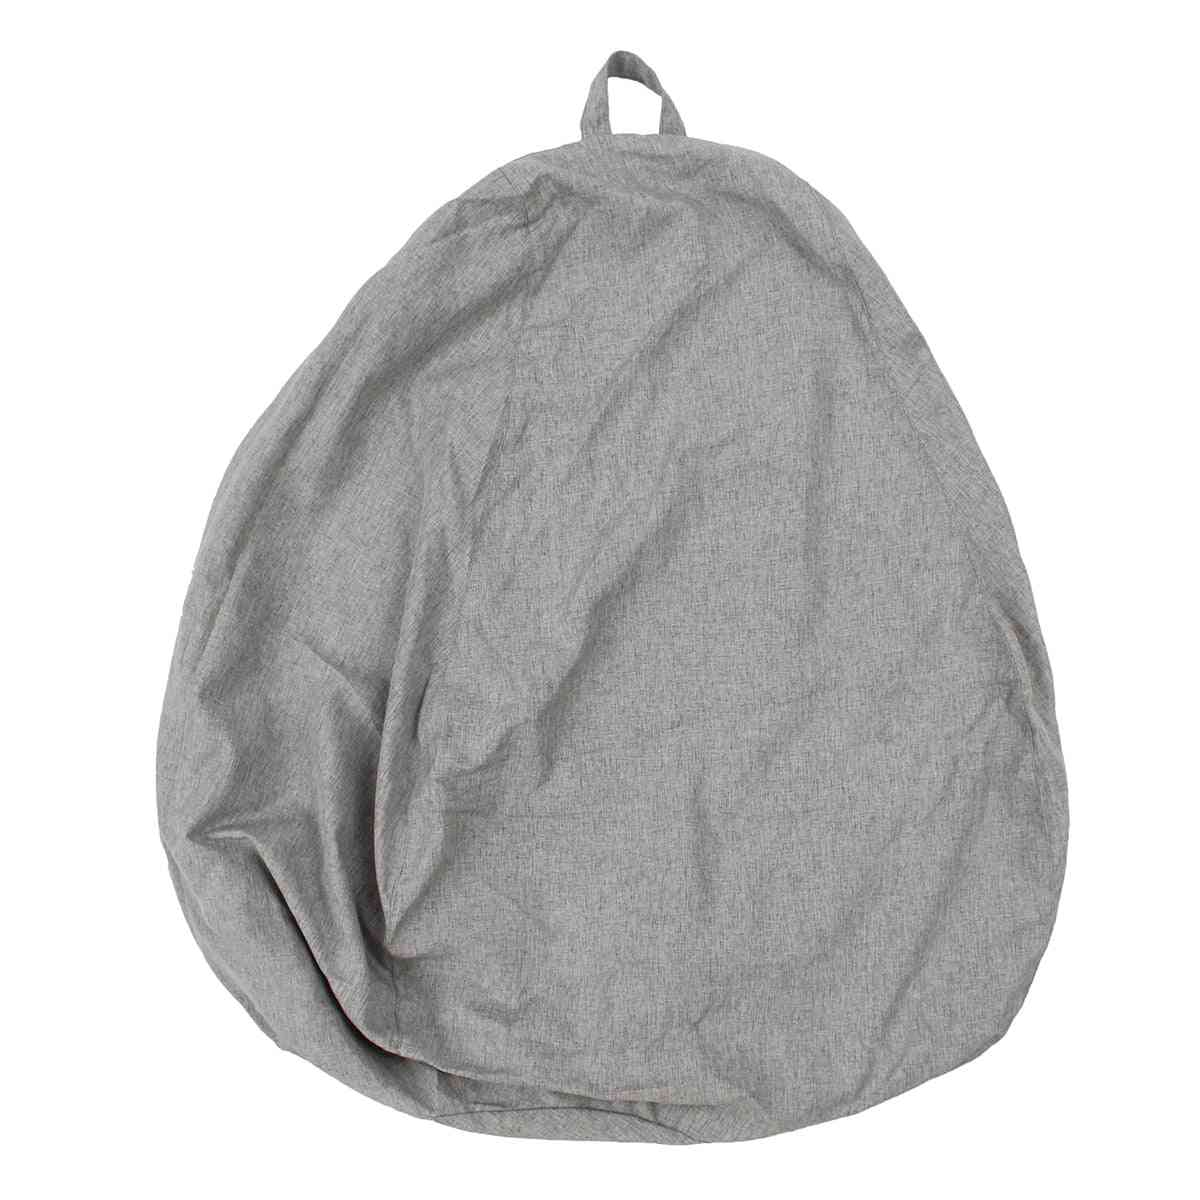 Large Small Lazy Sofas Cover Chairs Without Filler Linen Cloth Lounger Seat Bean Bag Pouf Puff